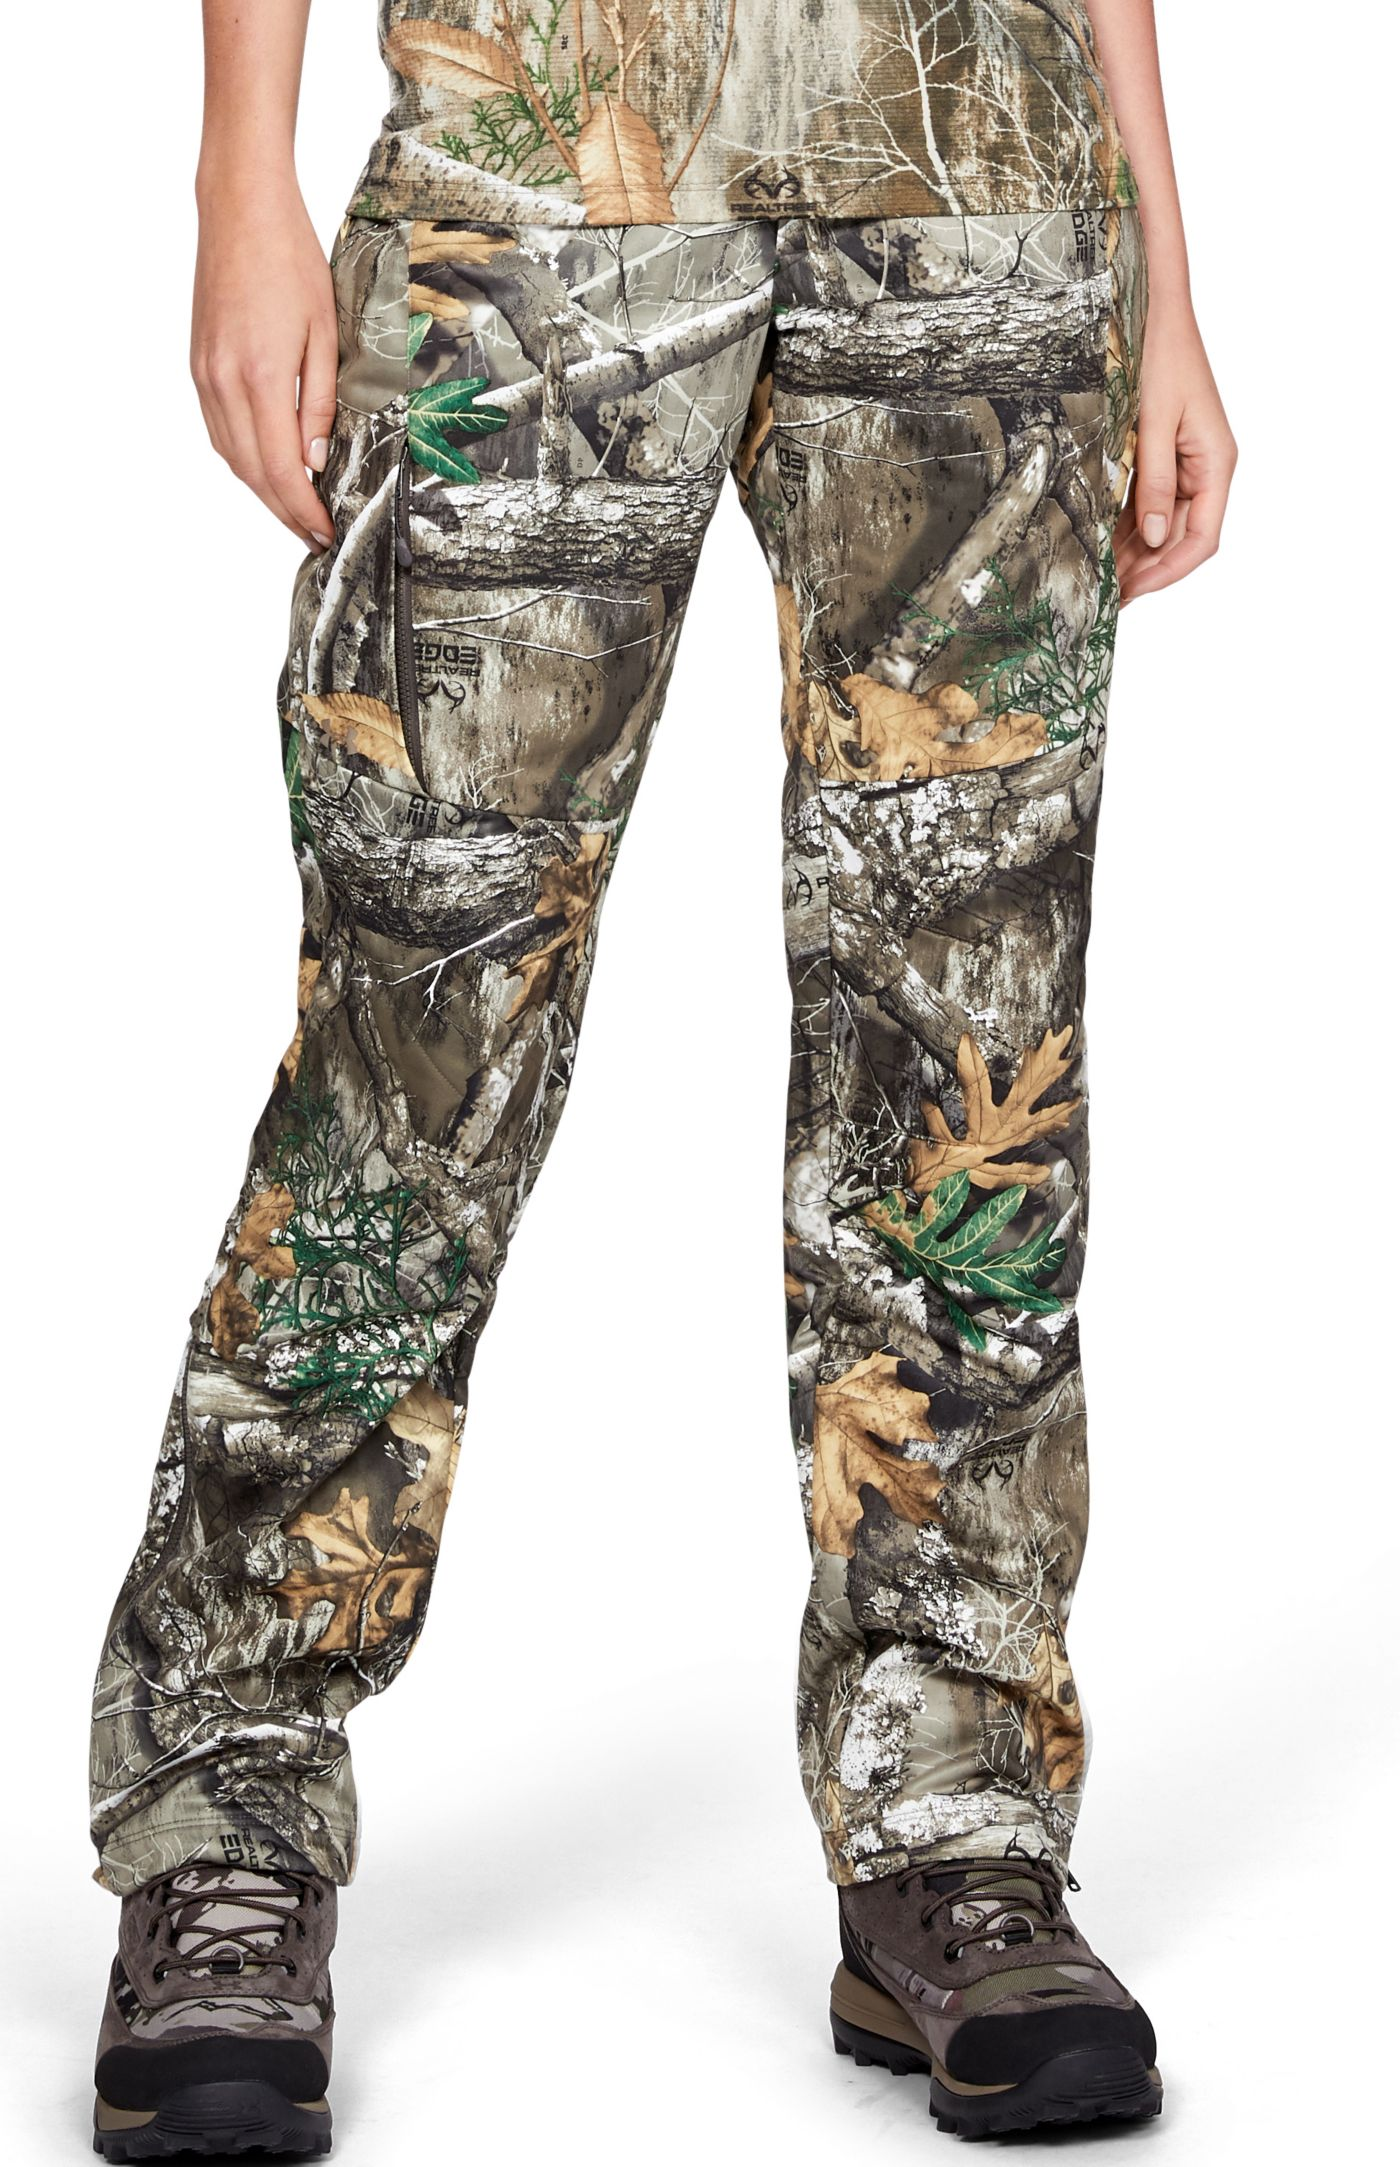 Under Armour Women's Brow Tine Hunting Pants